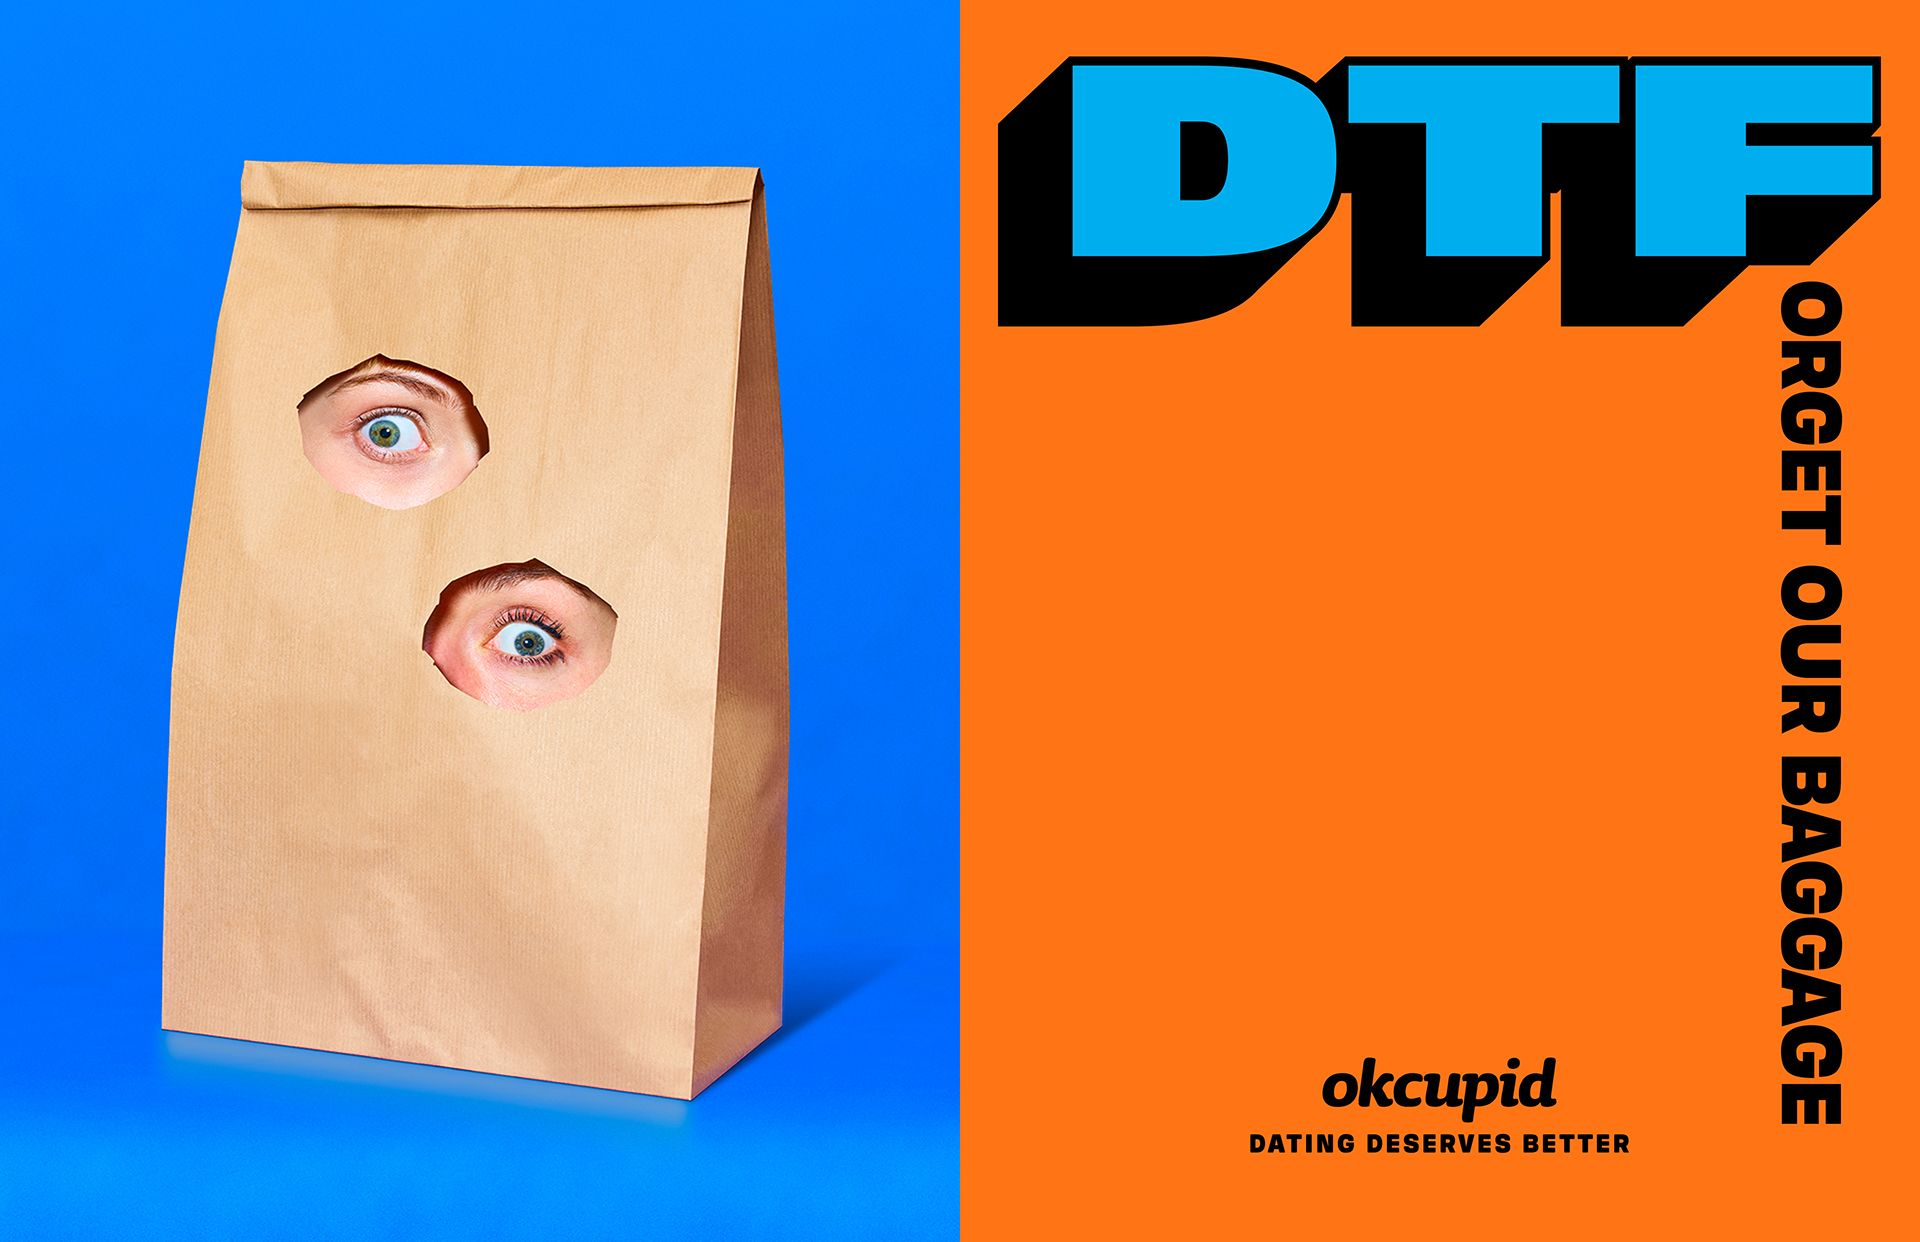 OkCupid's First Ad Campaign Is Down to Focus On More Than